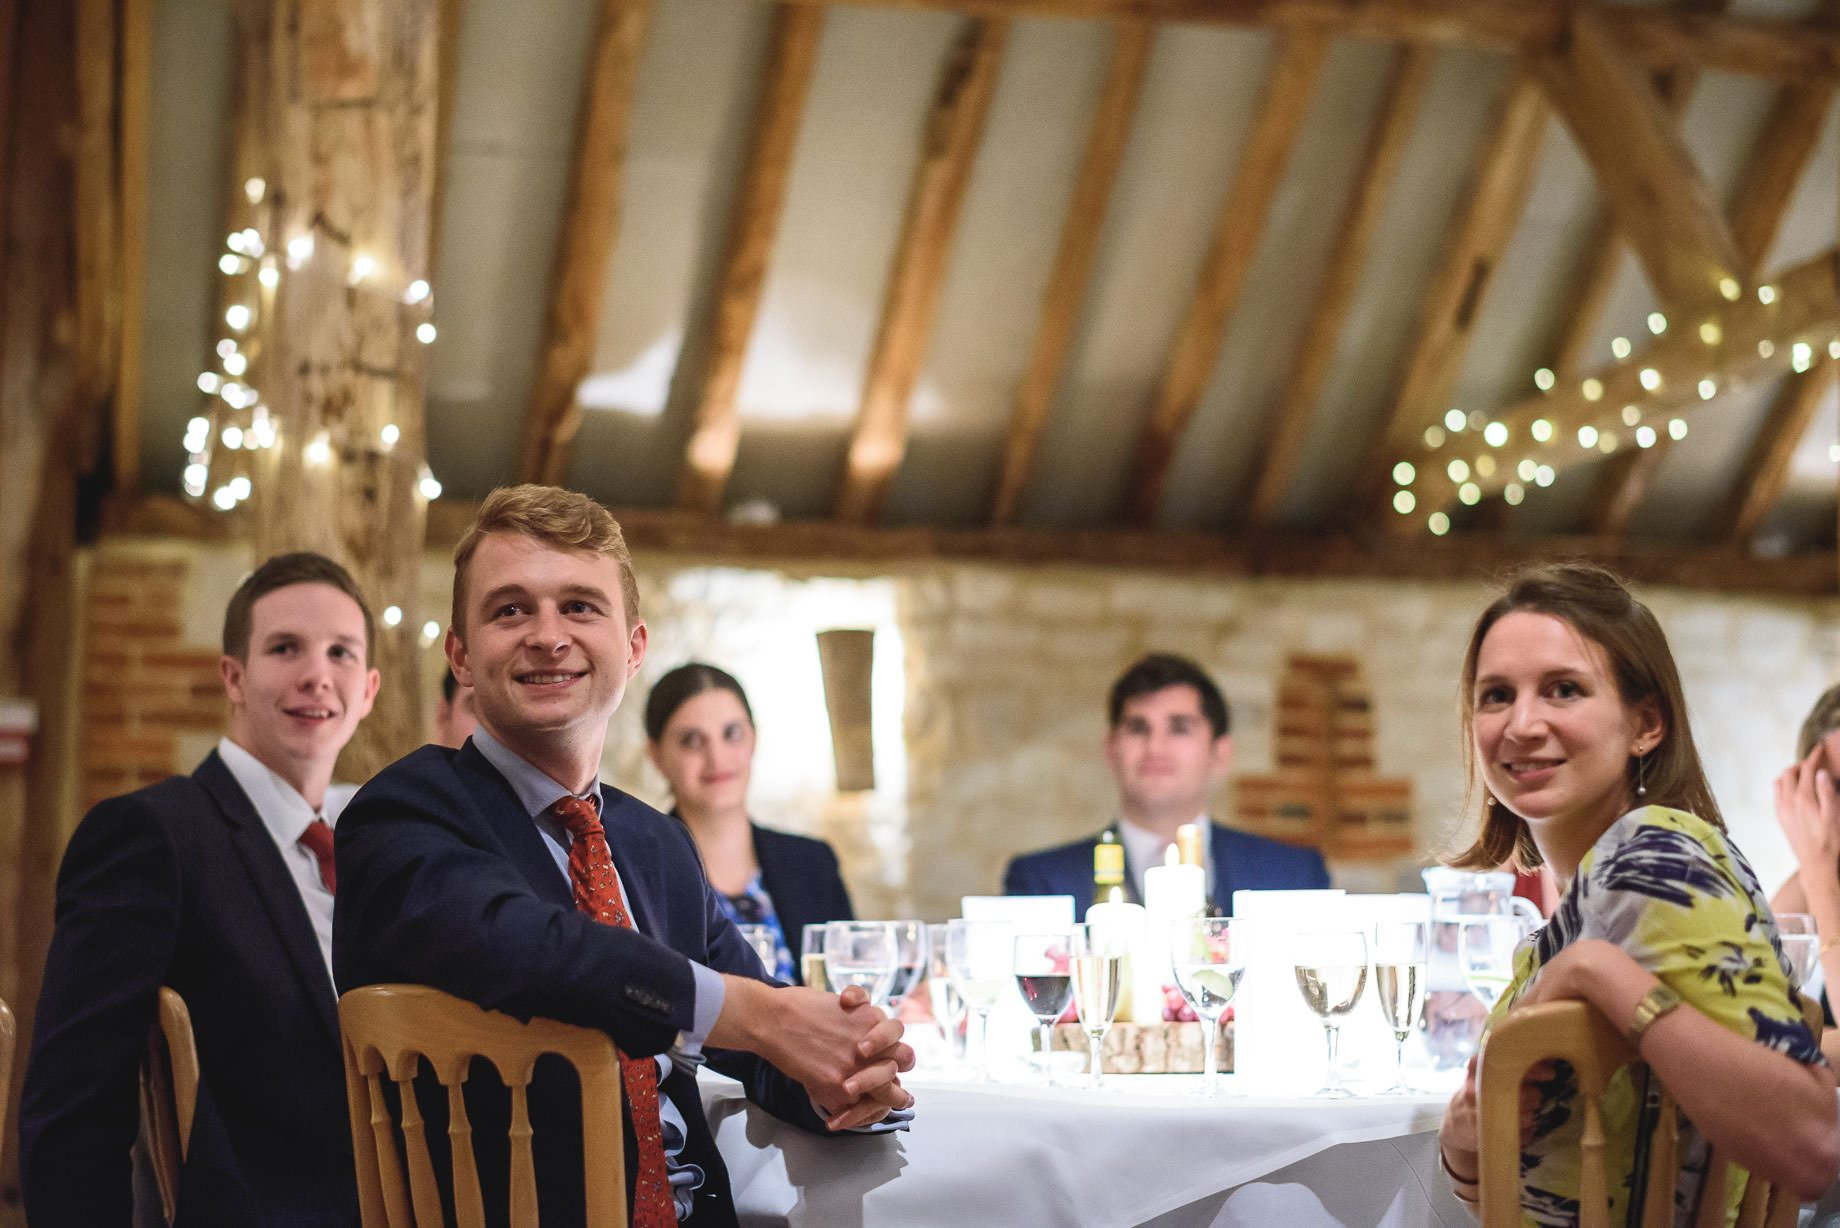 bury-court-barn-wedding-photography-guy-collier-photography-nadia-tom-147-of-184